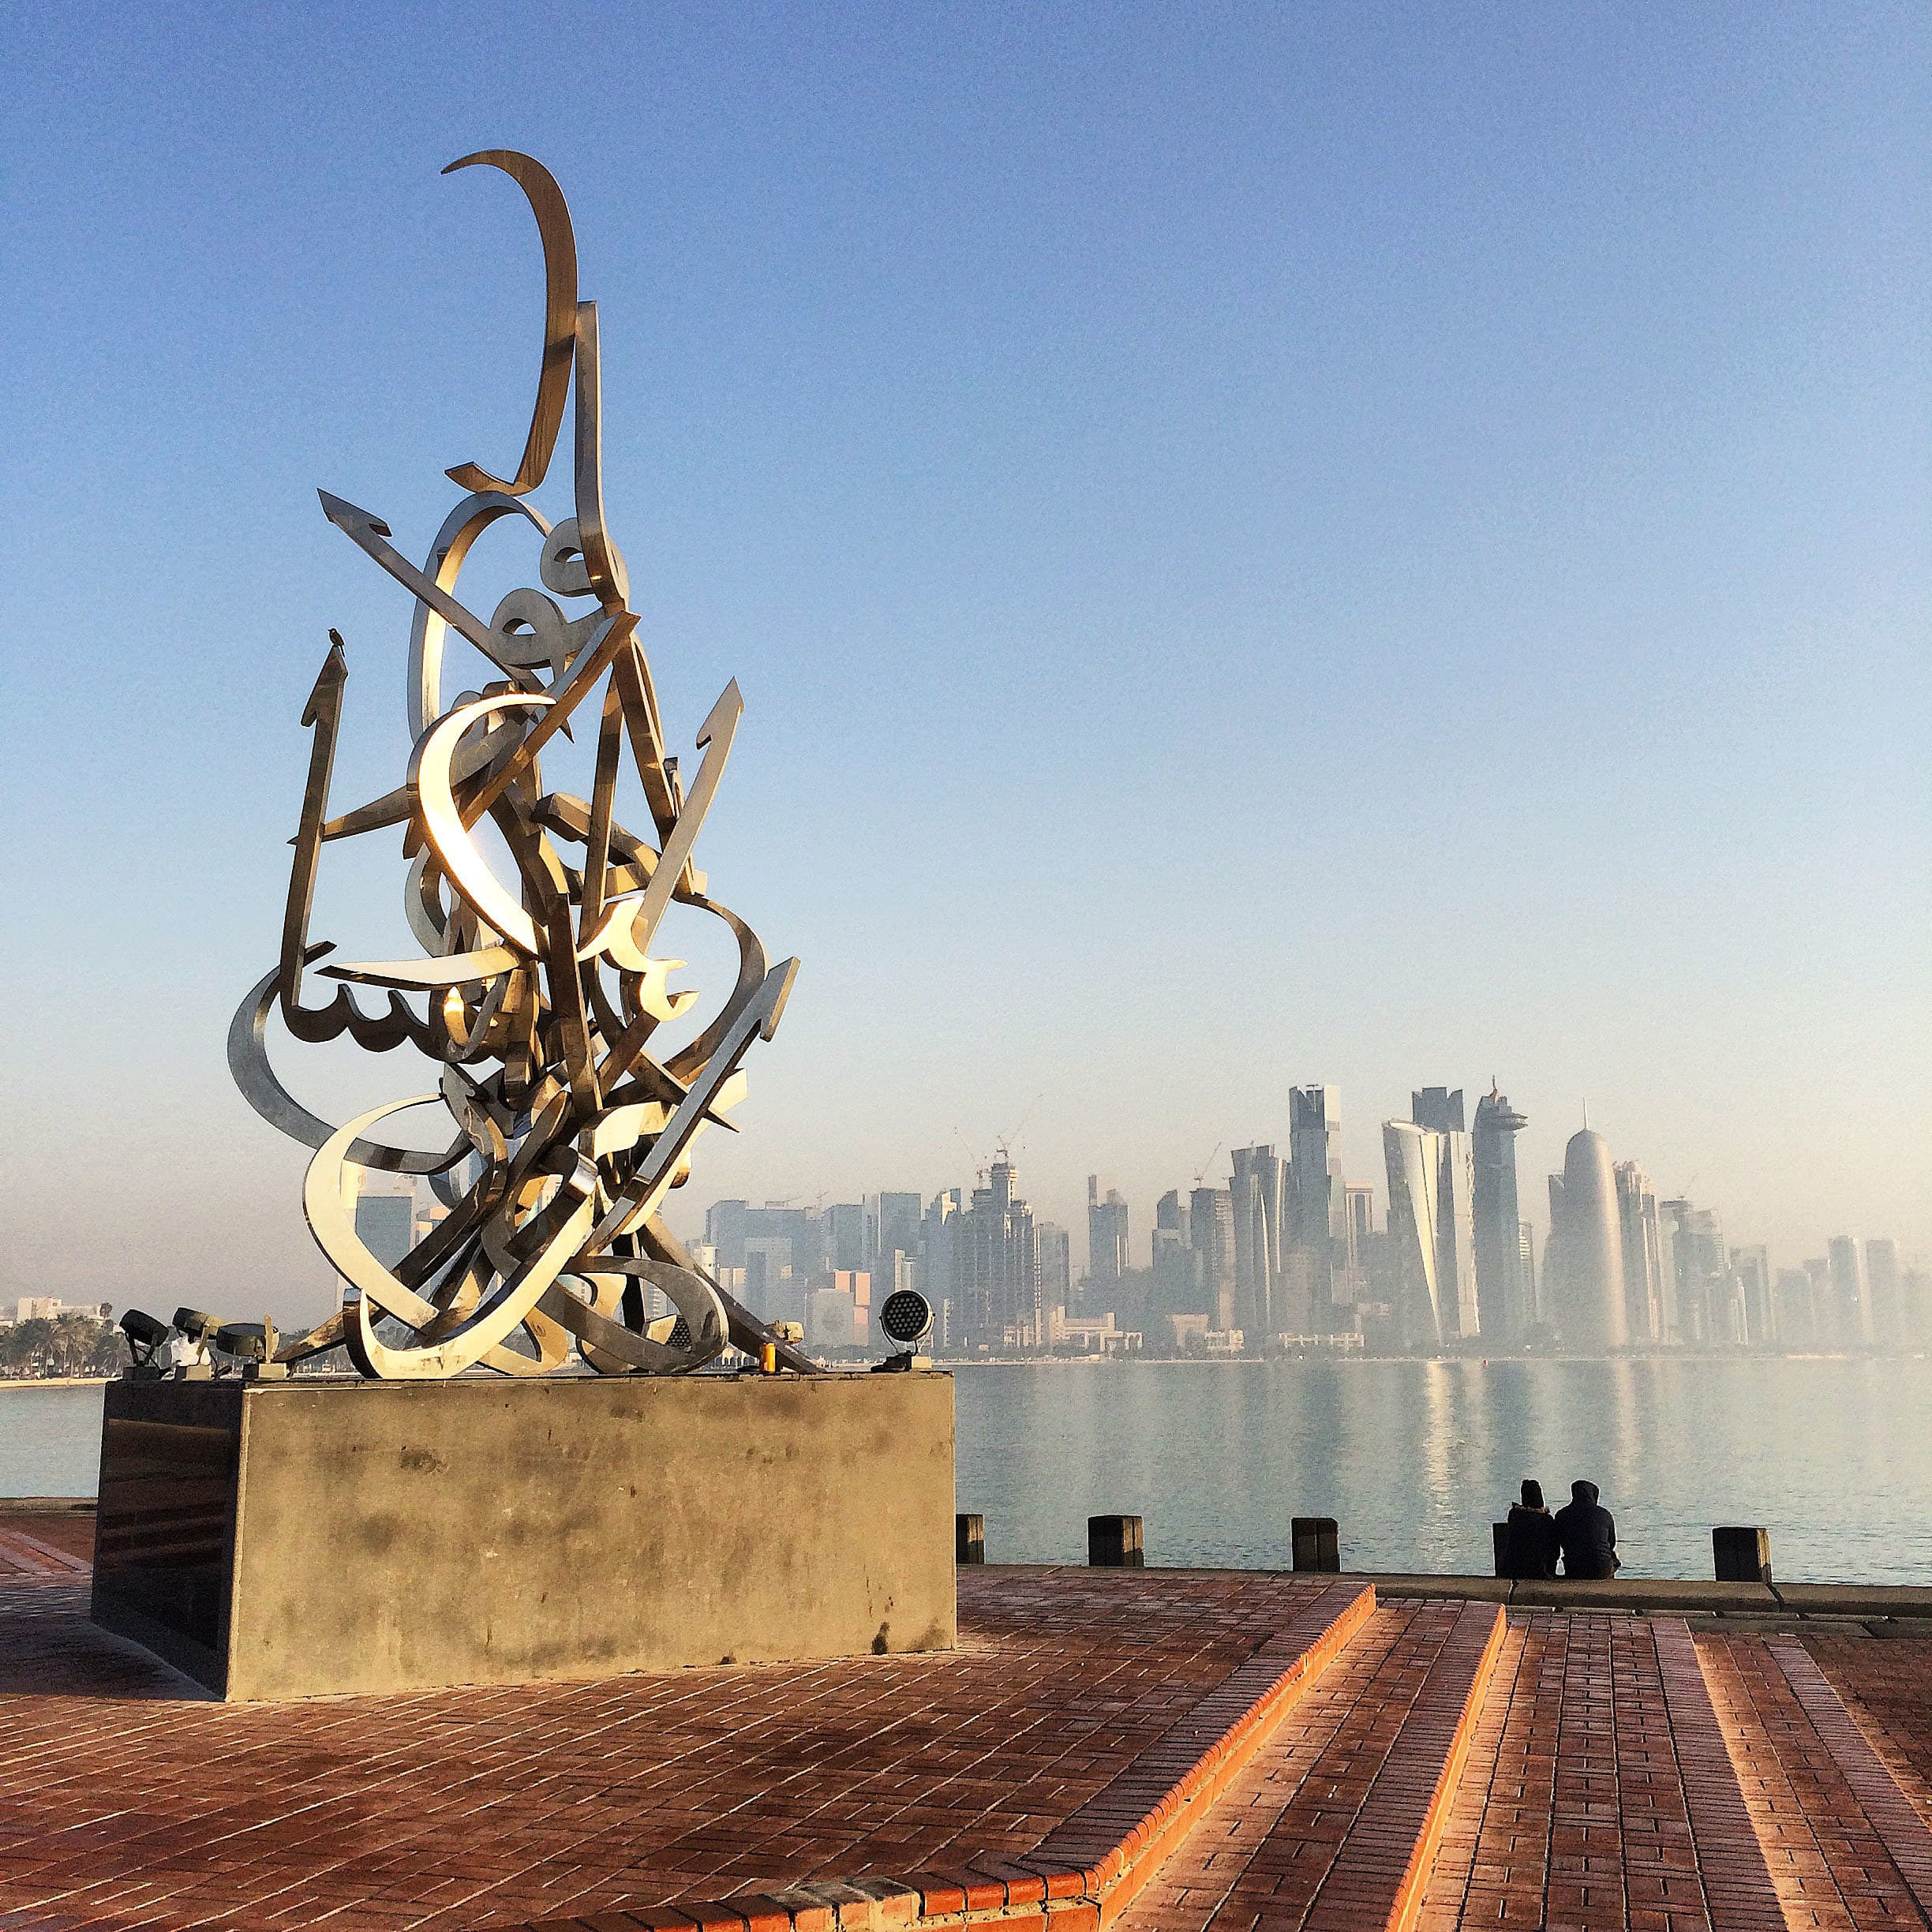 A traditional calligraphy public art display on the Corniche.